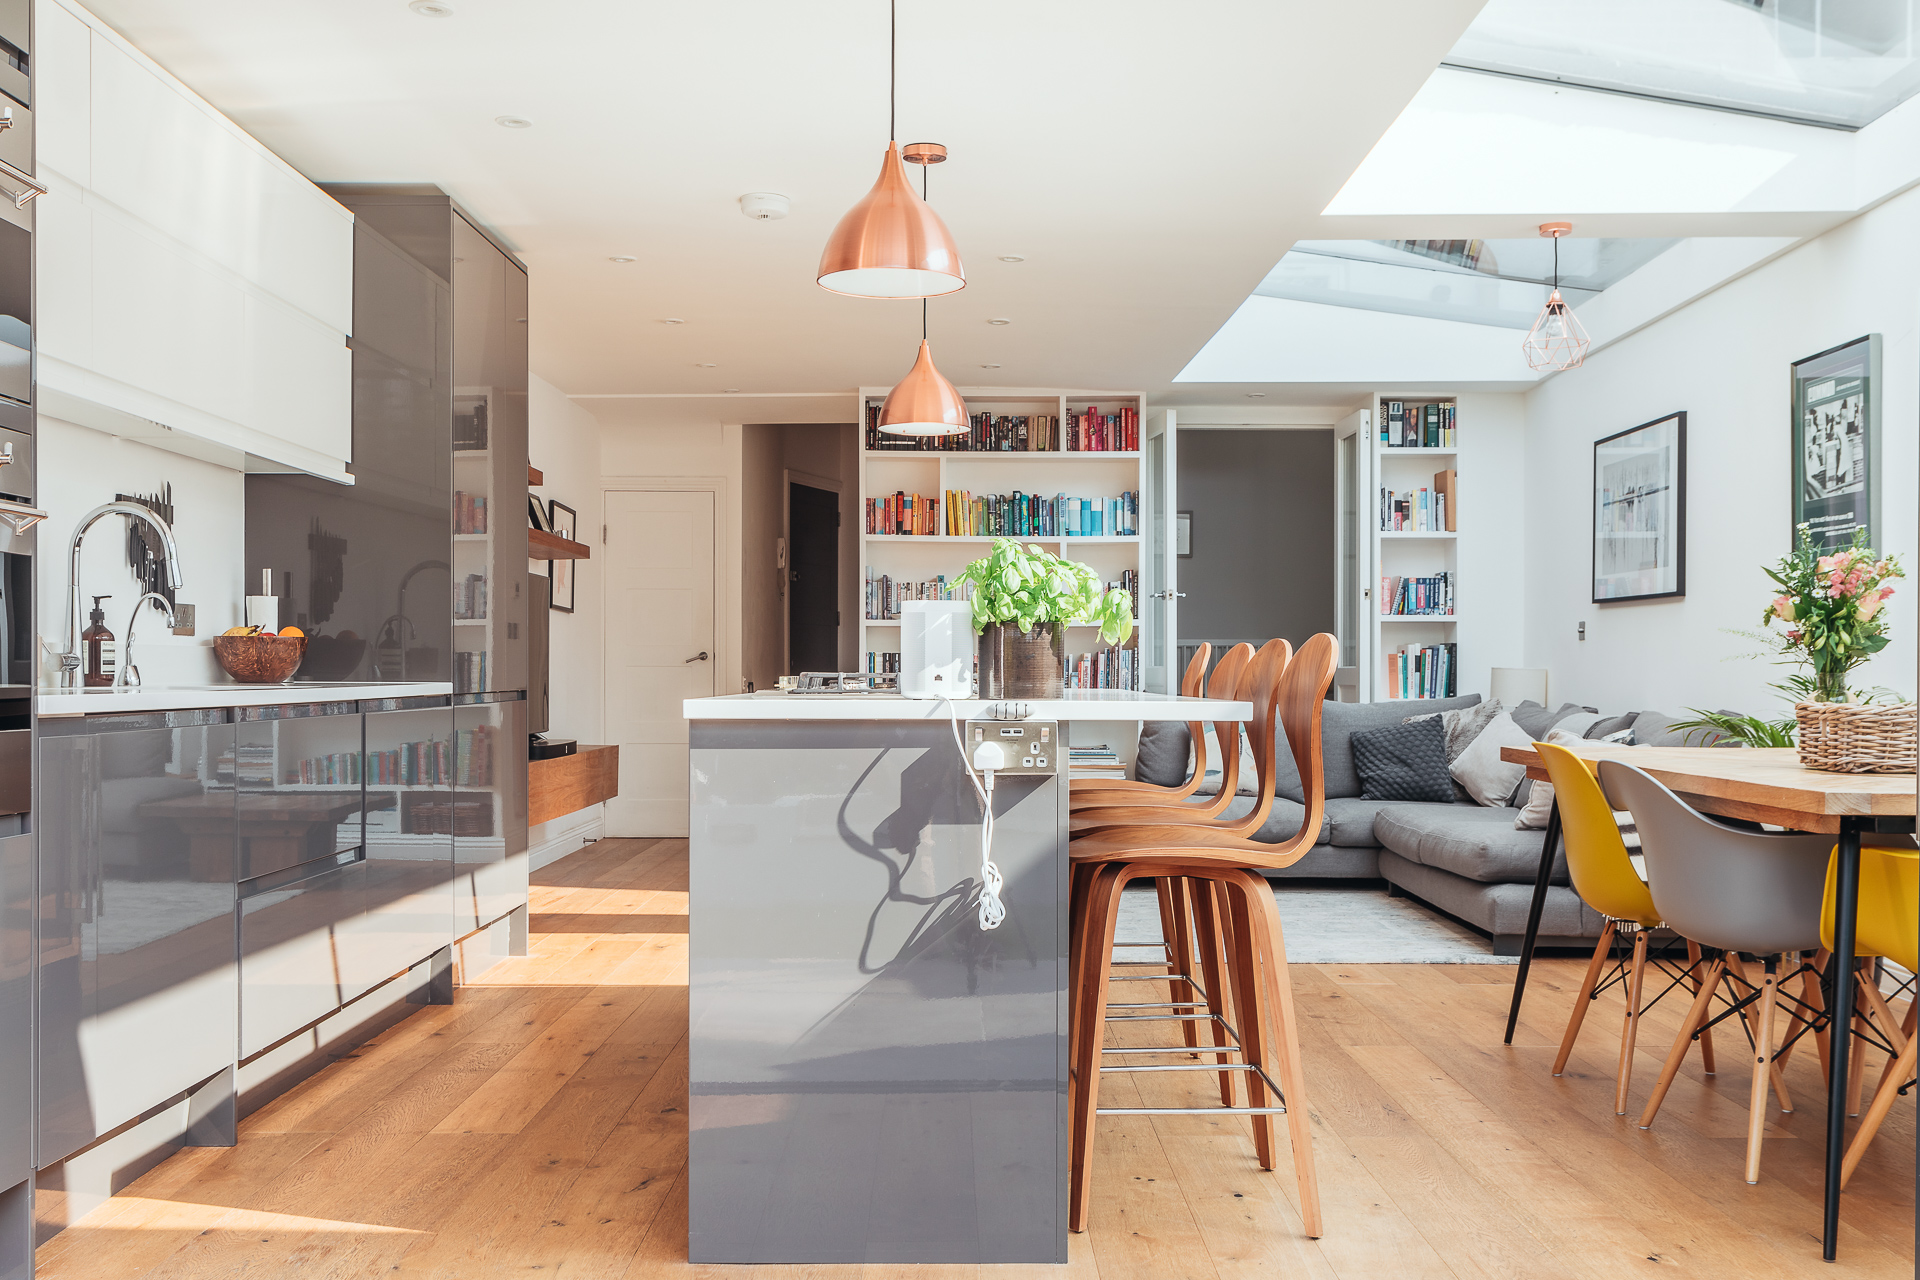 An interior shot of a property sold at Davies & Davies, Estate Agents in Stroud Green.